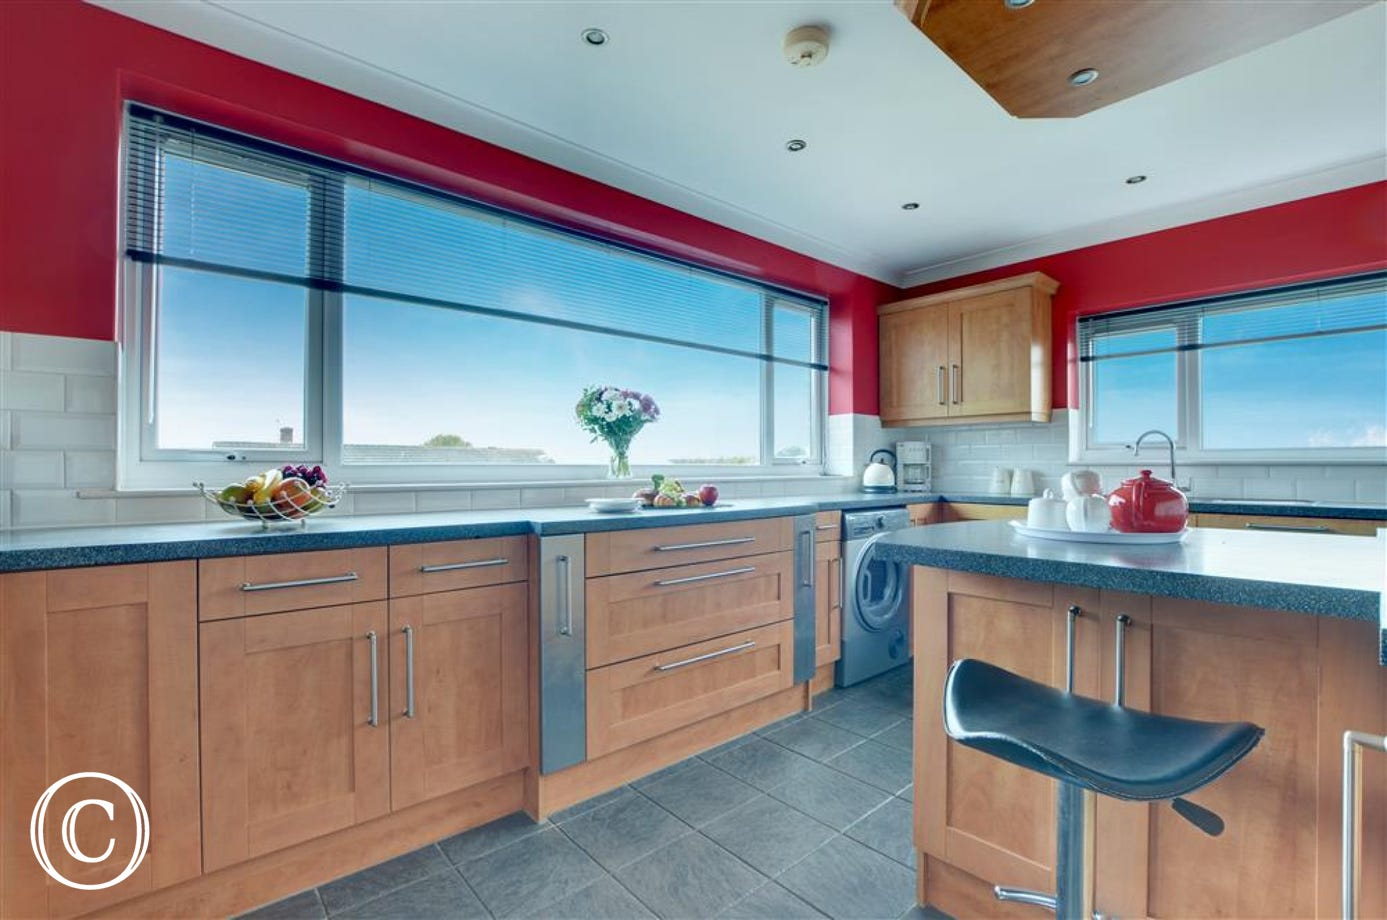 Huge picture windows capture the views from every angle in the stylish kitchen